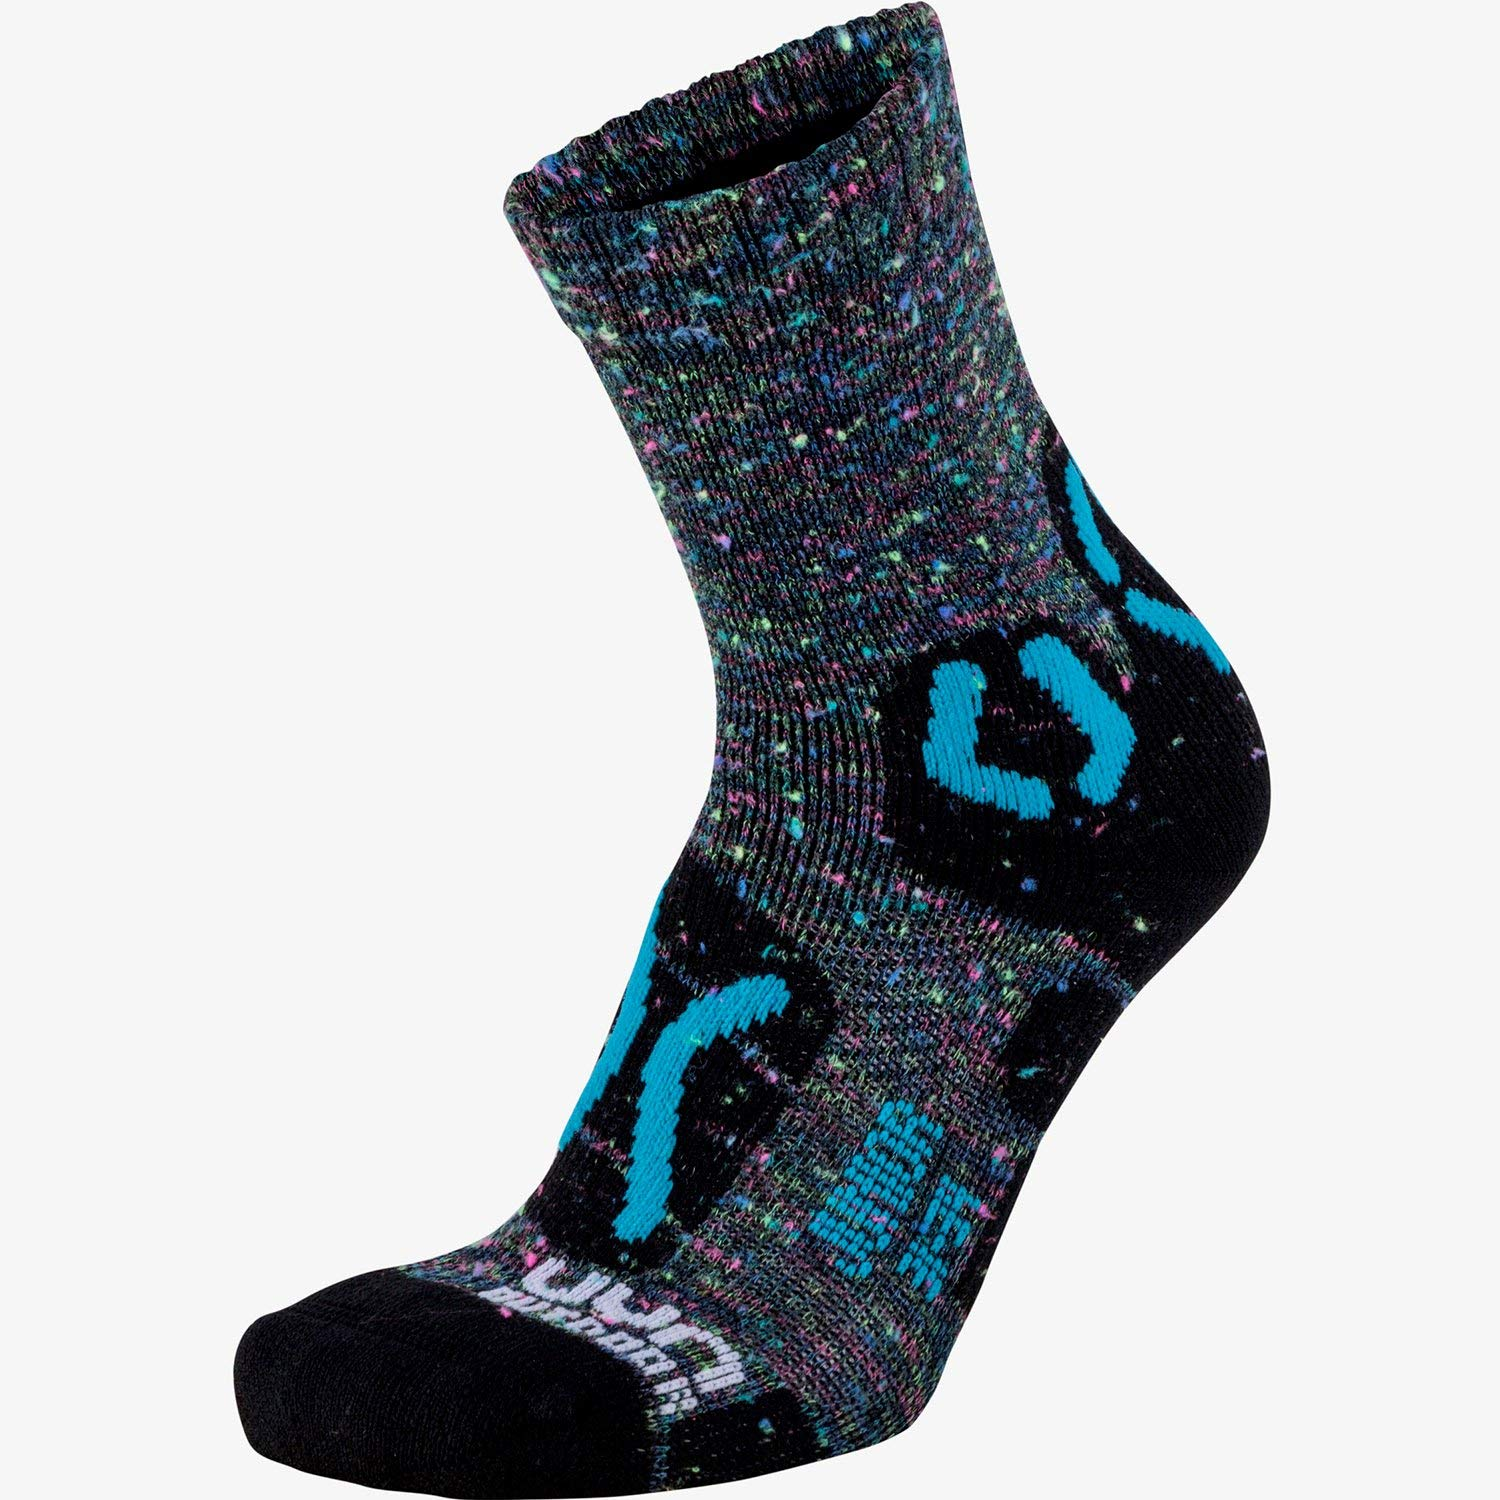 UYN Trekking Outdoor Explorer Kids Walking Socks UK 13 (Jnr) - 3 Grey Multicolour Turquoise by UYN Sports